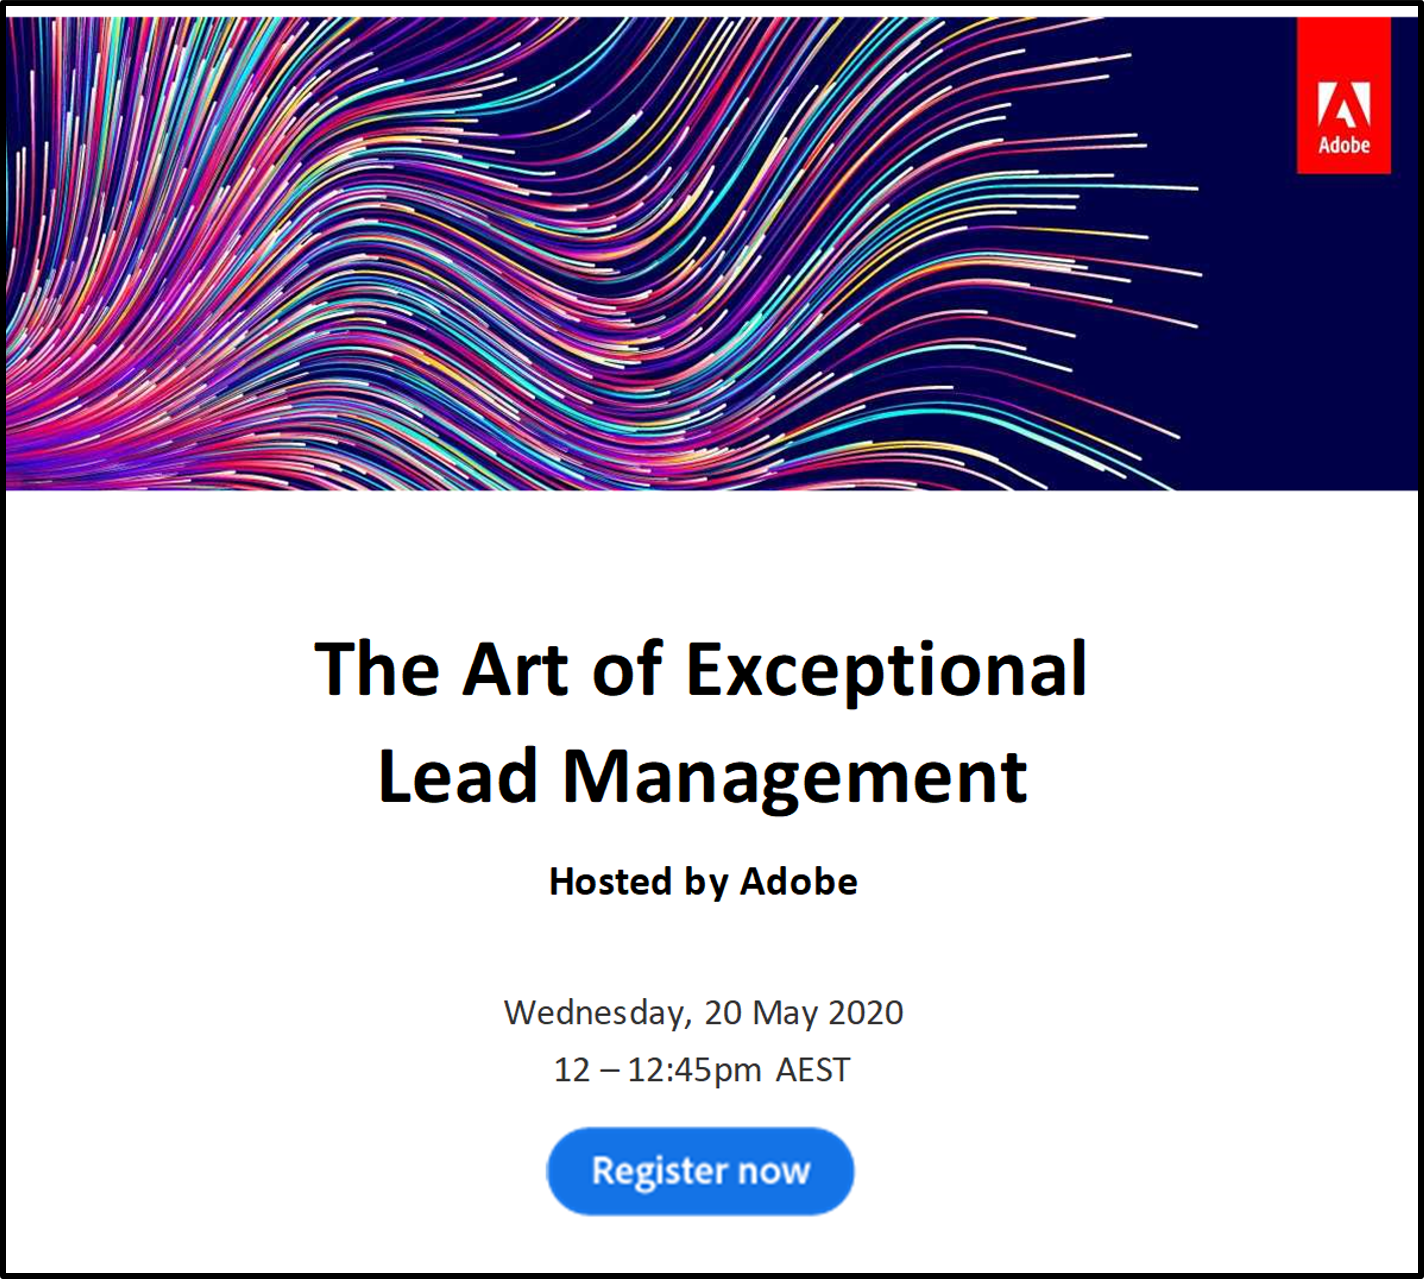 The Art of Exceptional Lead Management